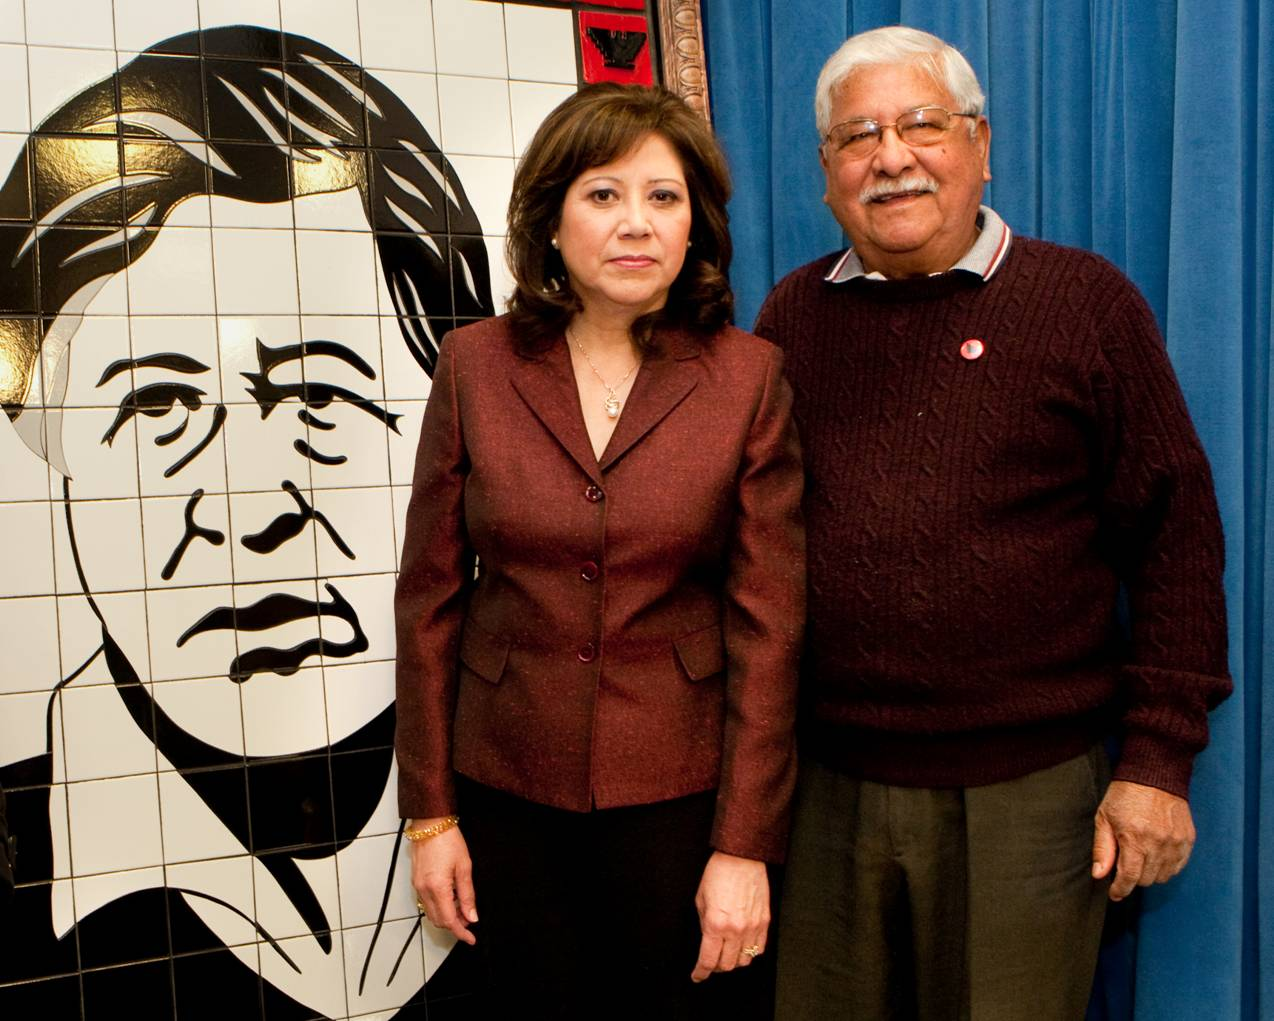 a biography of cesar estrada chavez the co founder of national farm workers association later the un Cesar chavez wikipedia, cesar chavez (born césar estrada co founded the national farm workers association (later the united biography cesar chavez.